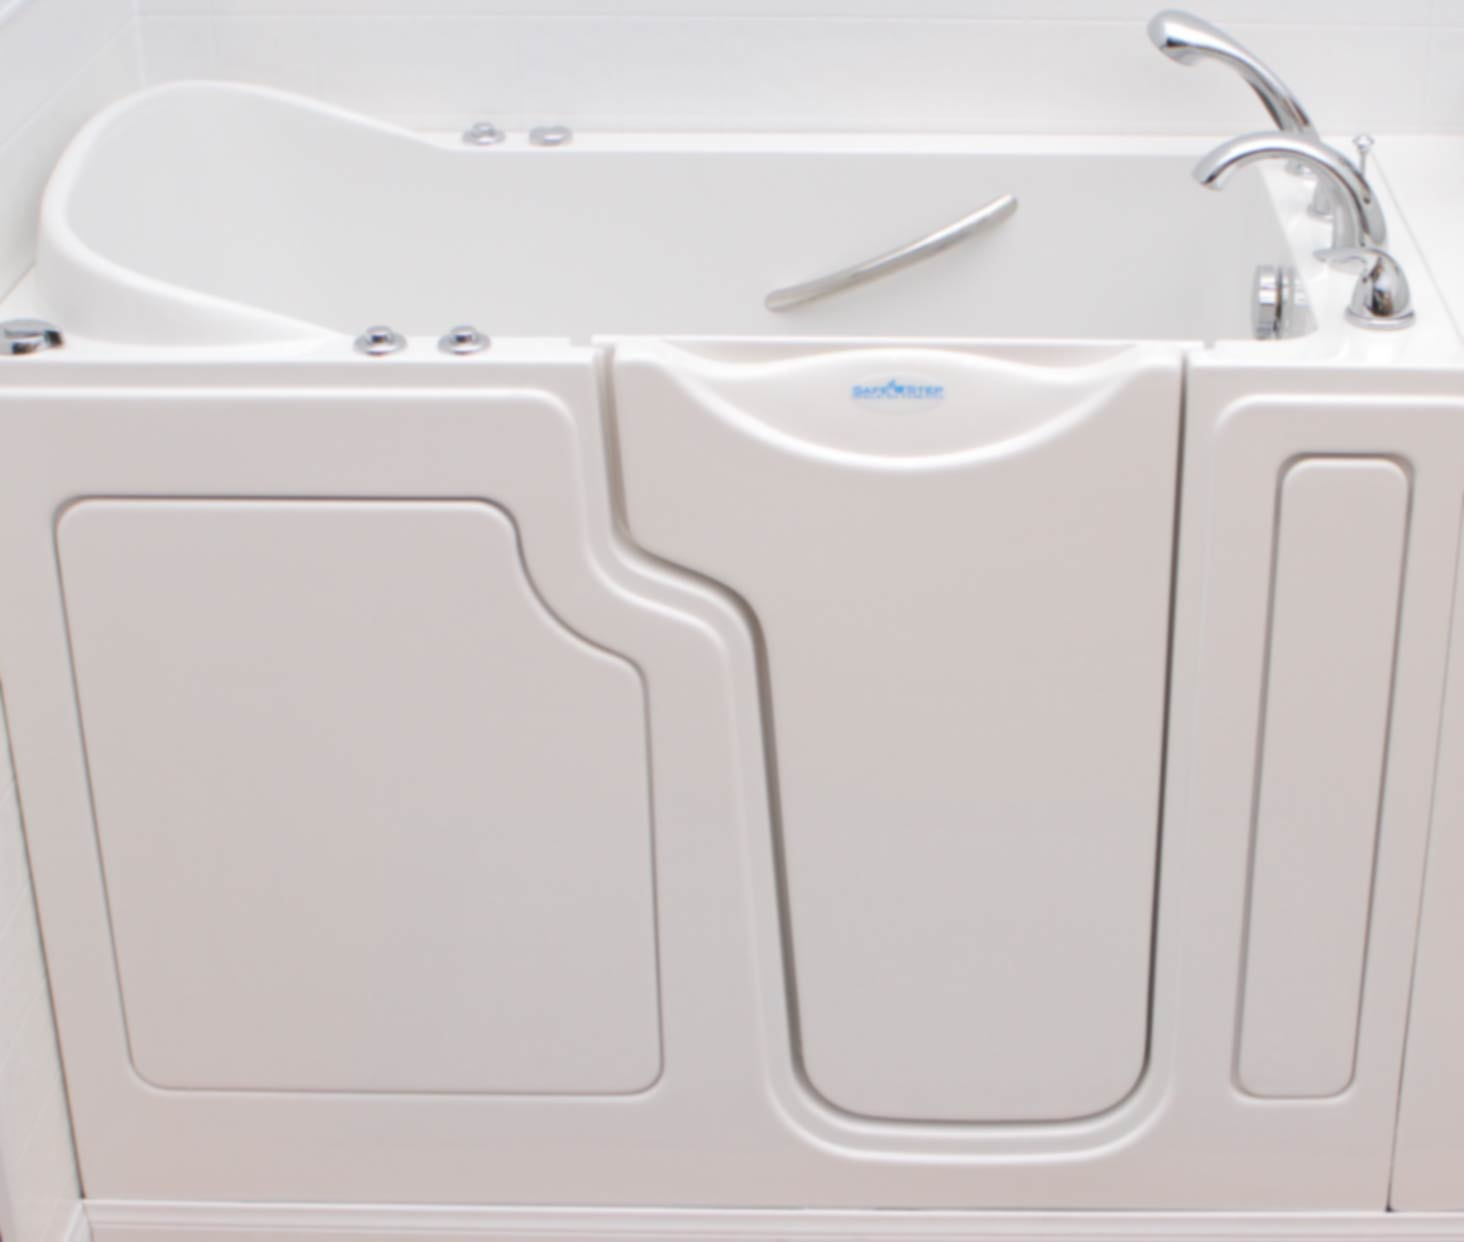 Walk-In Tub Reviews, Ratings and Comparisons